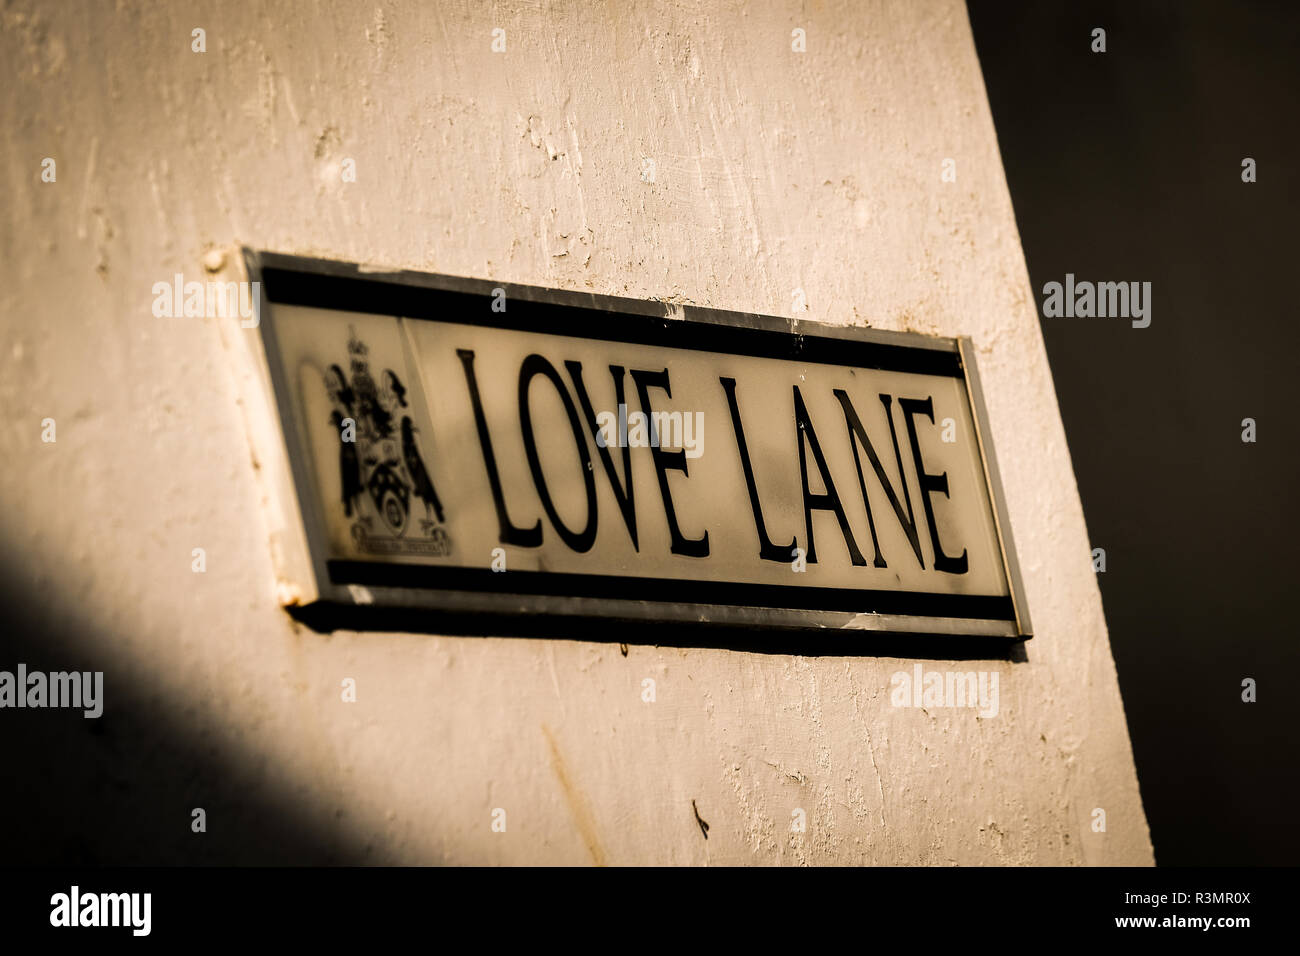 Street sign for Love Lane in St Ives, Cornwall. - Stock Image